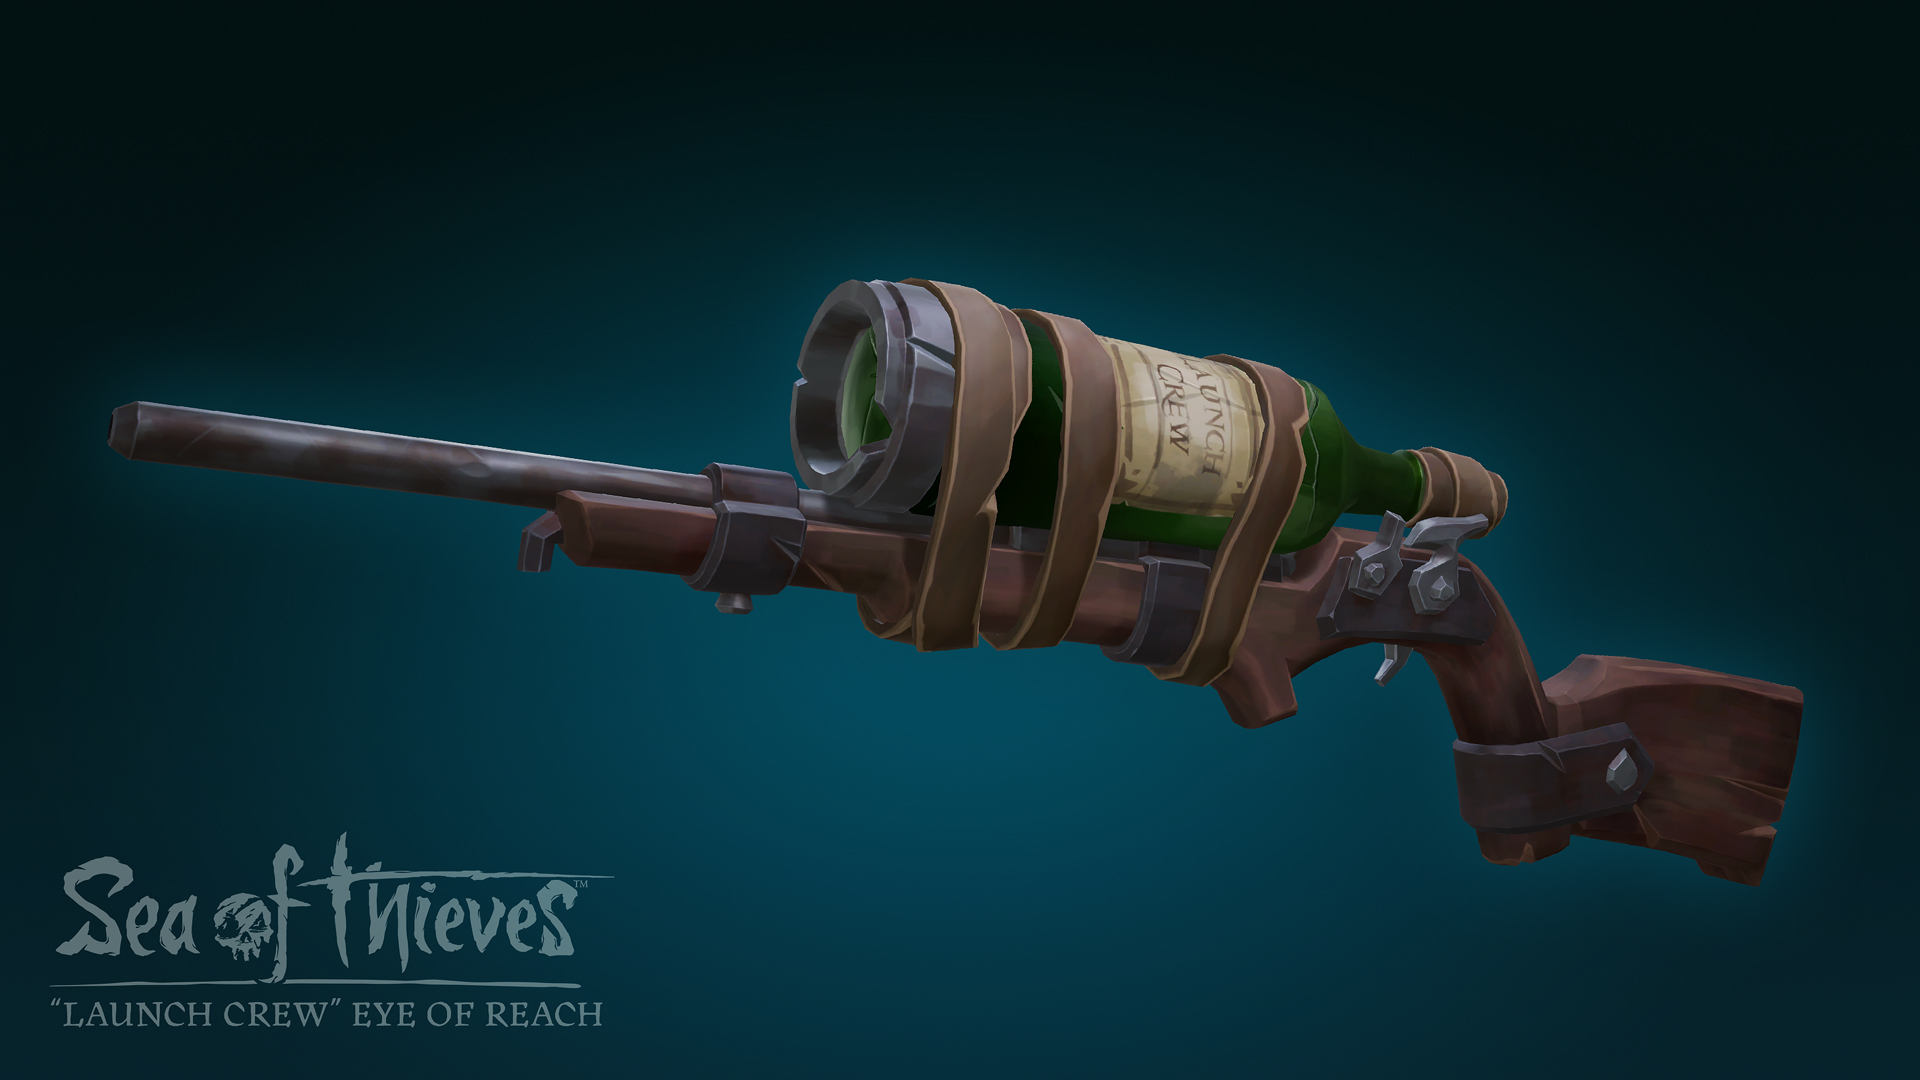 Sea of Thieves Patch 1.0.6 Adds a Timed Limited Edition Rifle